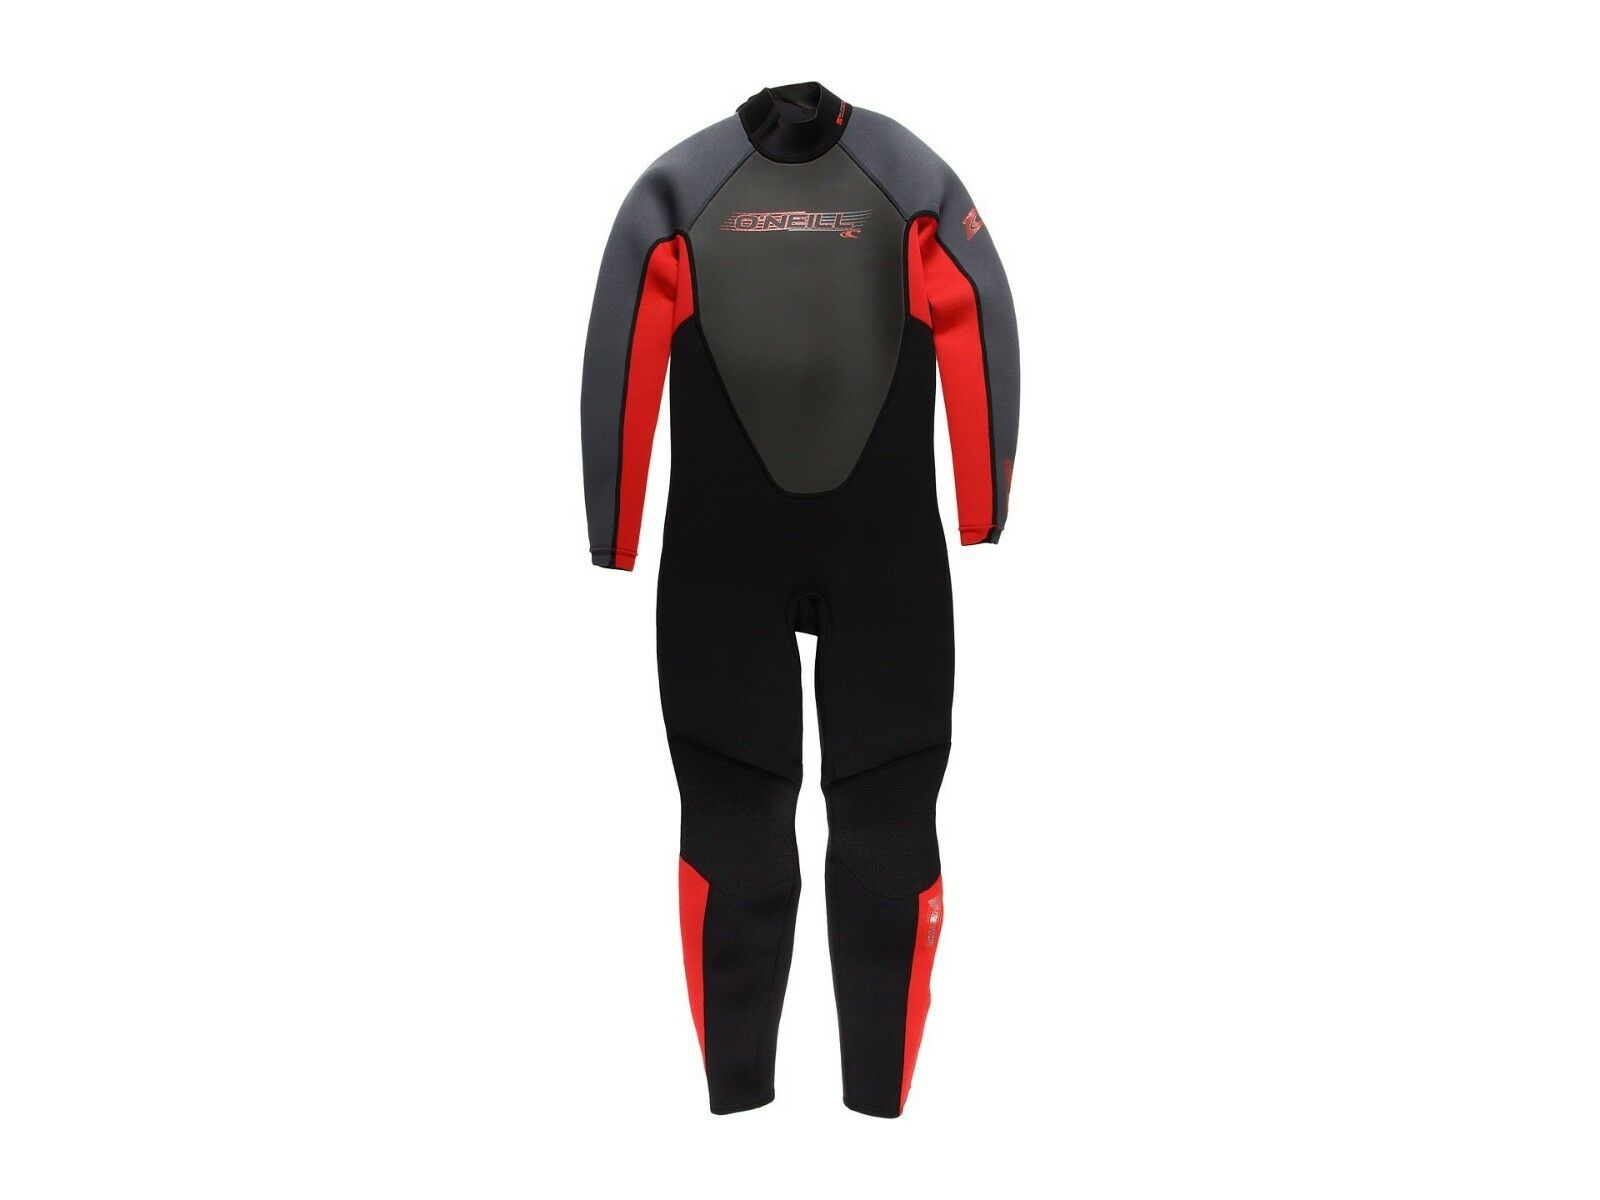 O'NEILL Youth 3.2 REACTOR BZ Wetsuit - BLK RED GRAPH - Size 10 - NWT